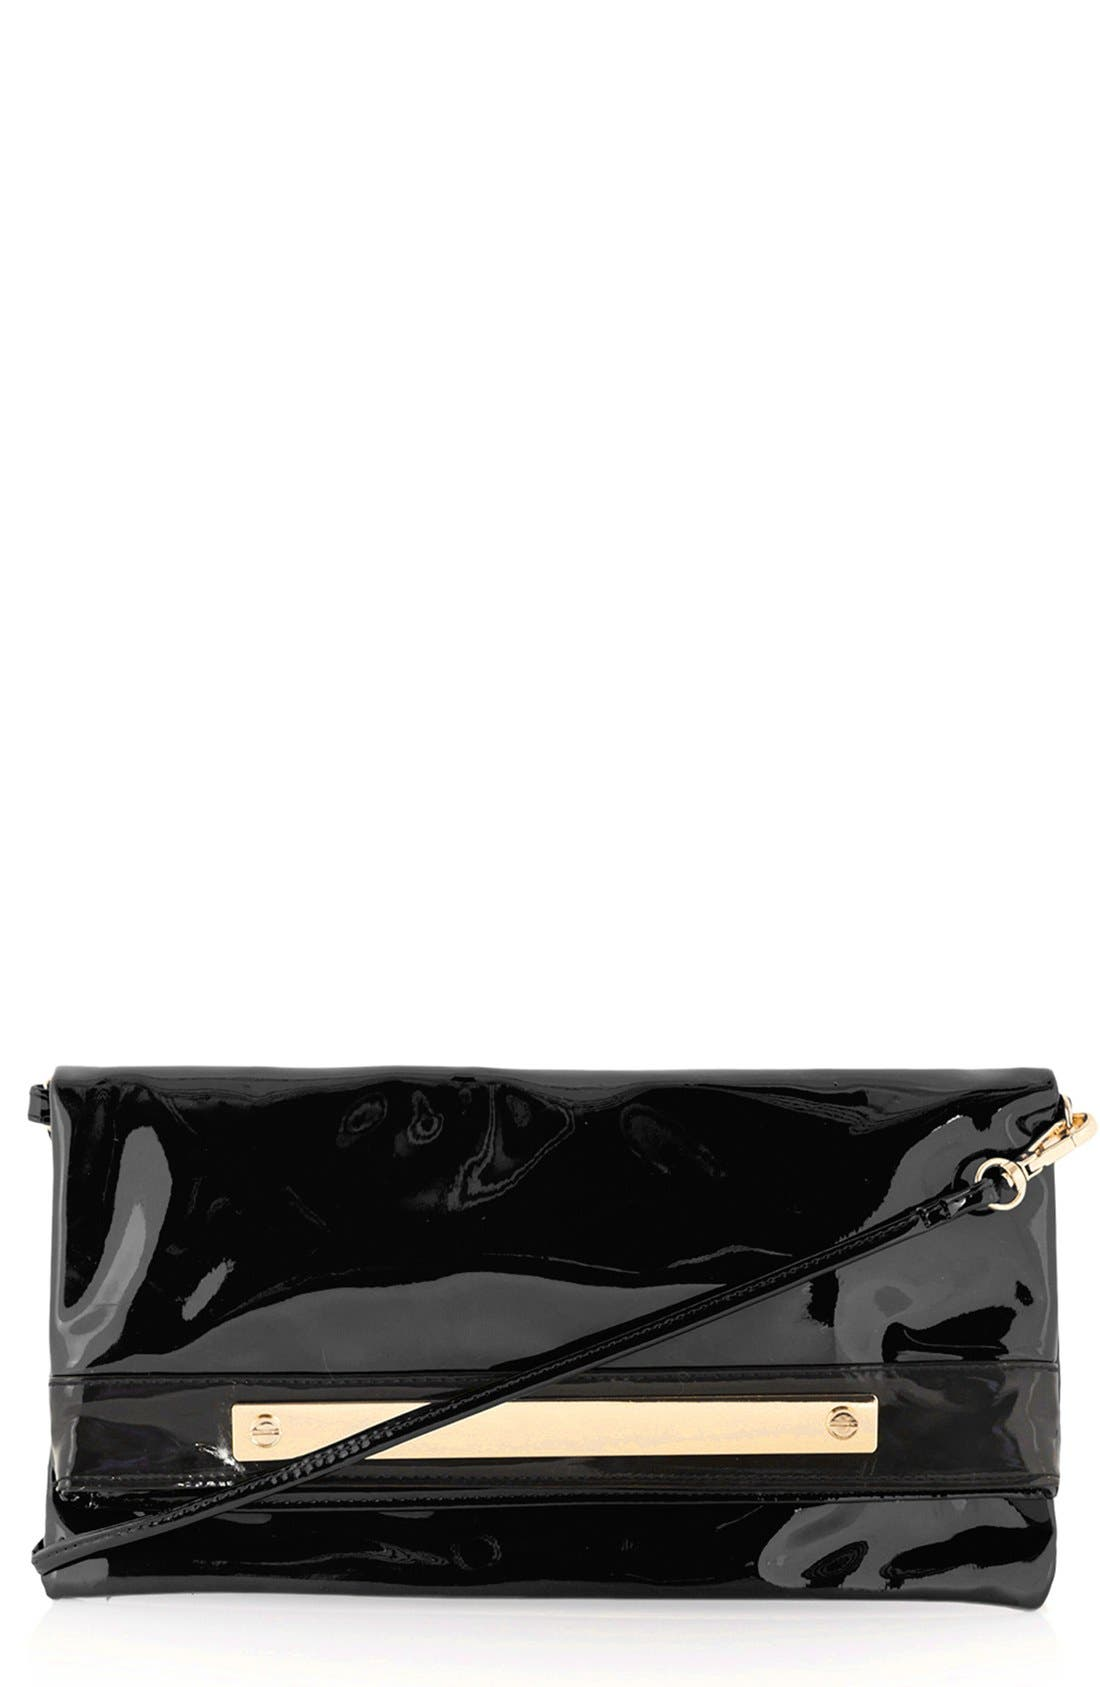 Alternate Image 1 Selected - Topshop Faux Patent Leather Clutch